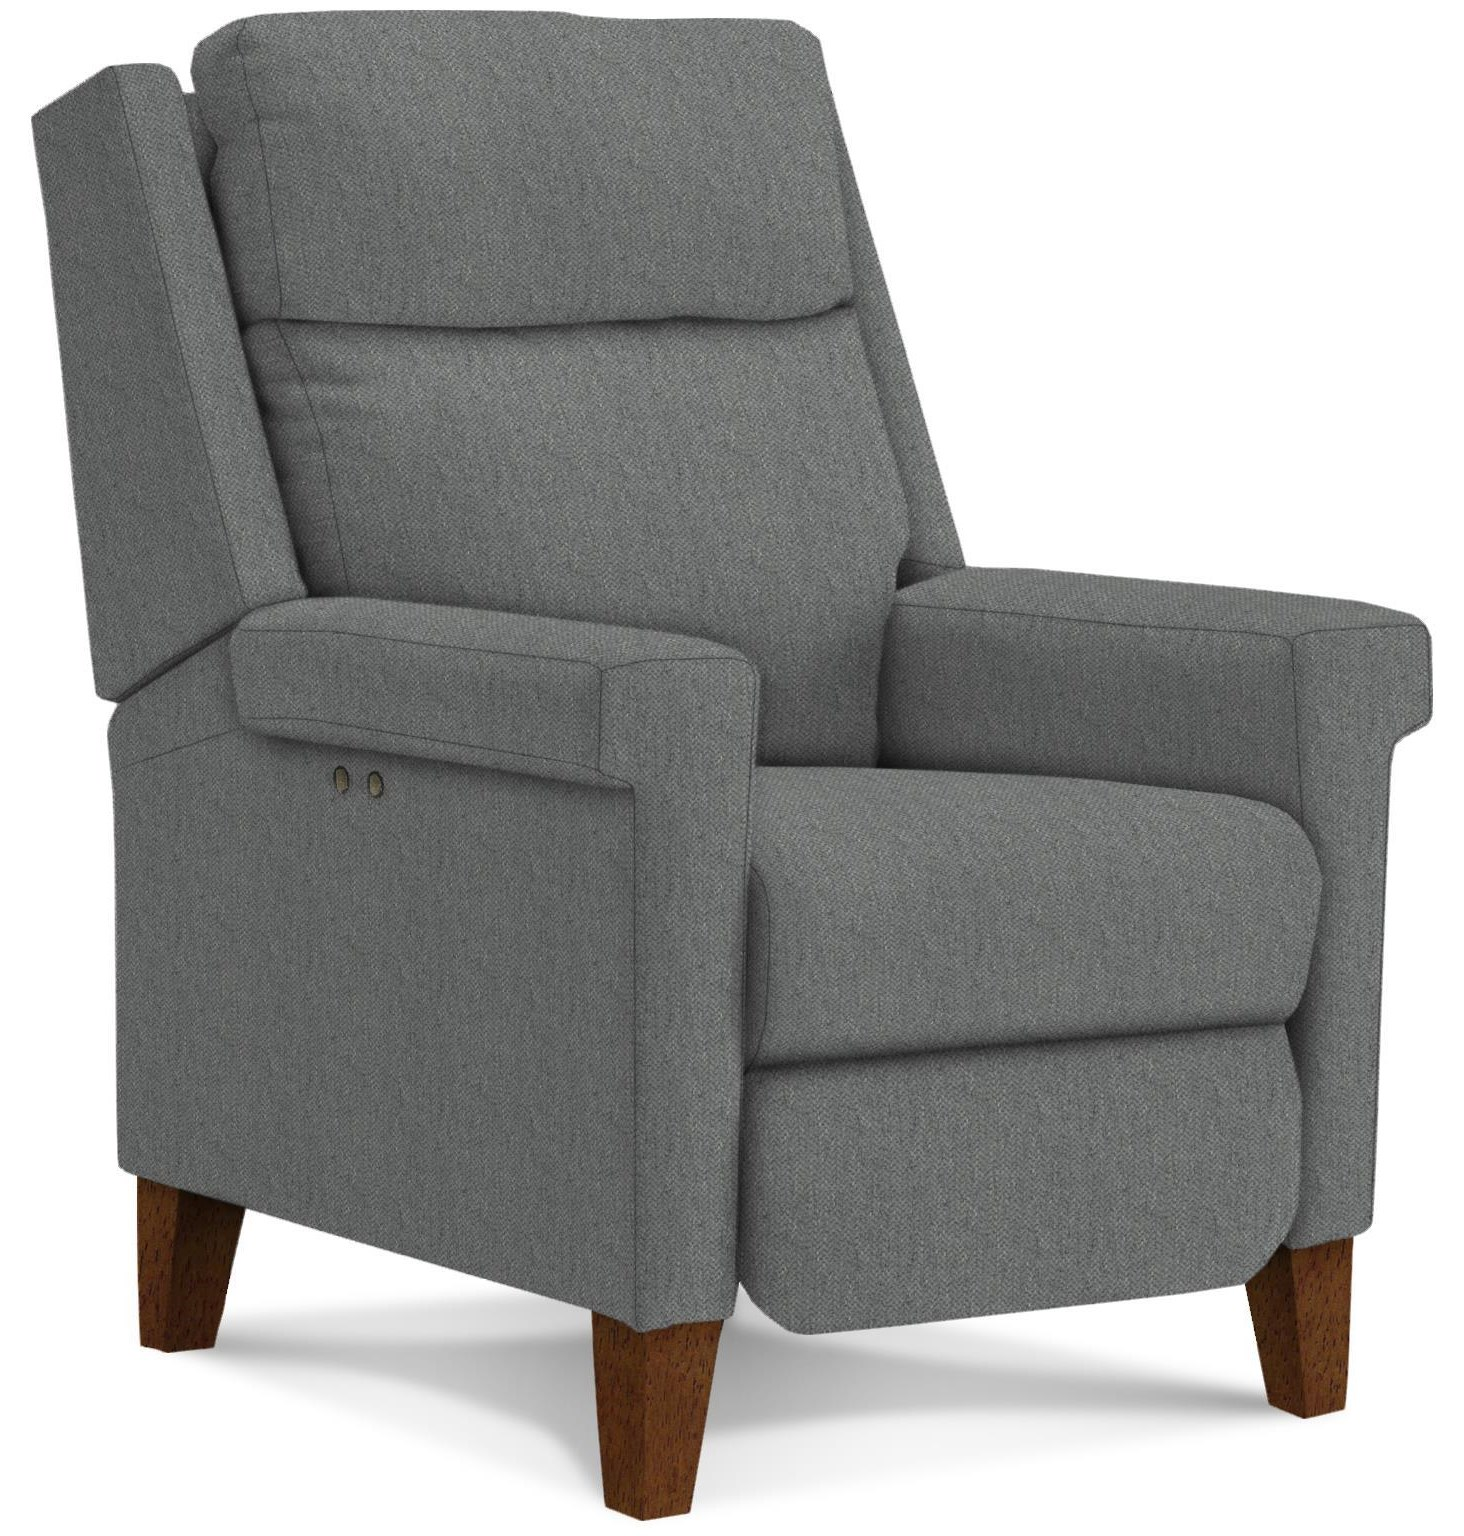 3L Power Recliner by Best Home Furnishings at Walker's Furniture